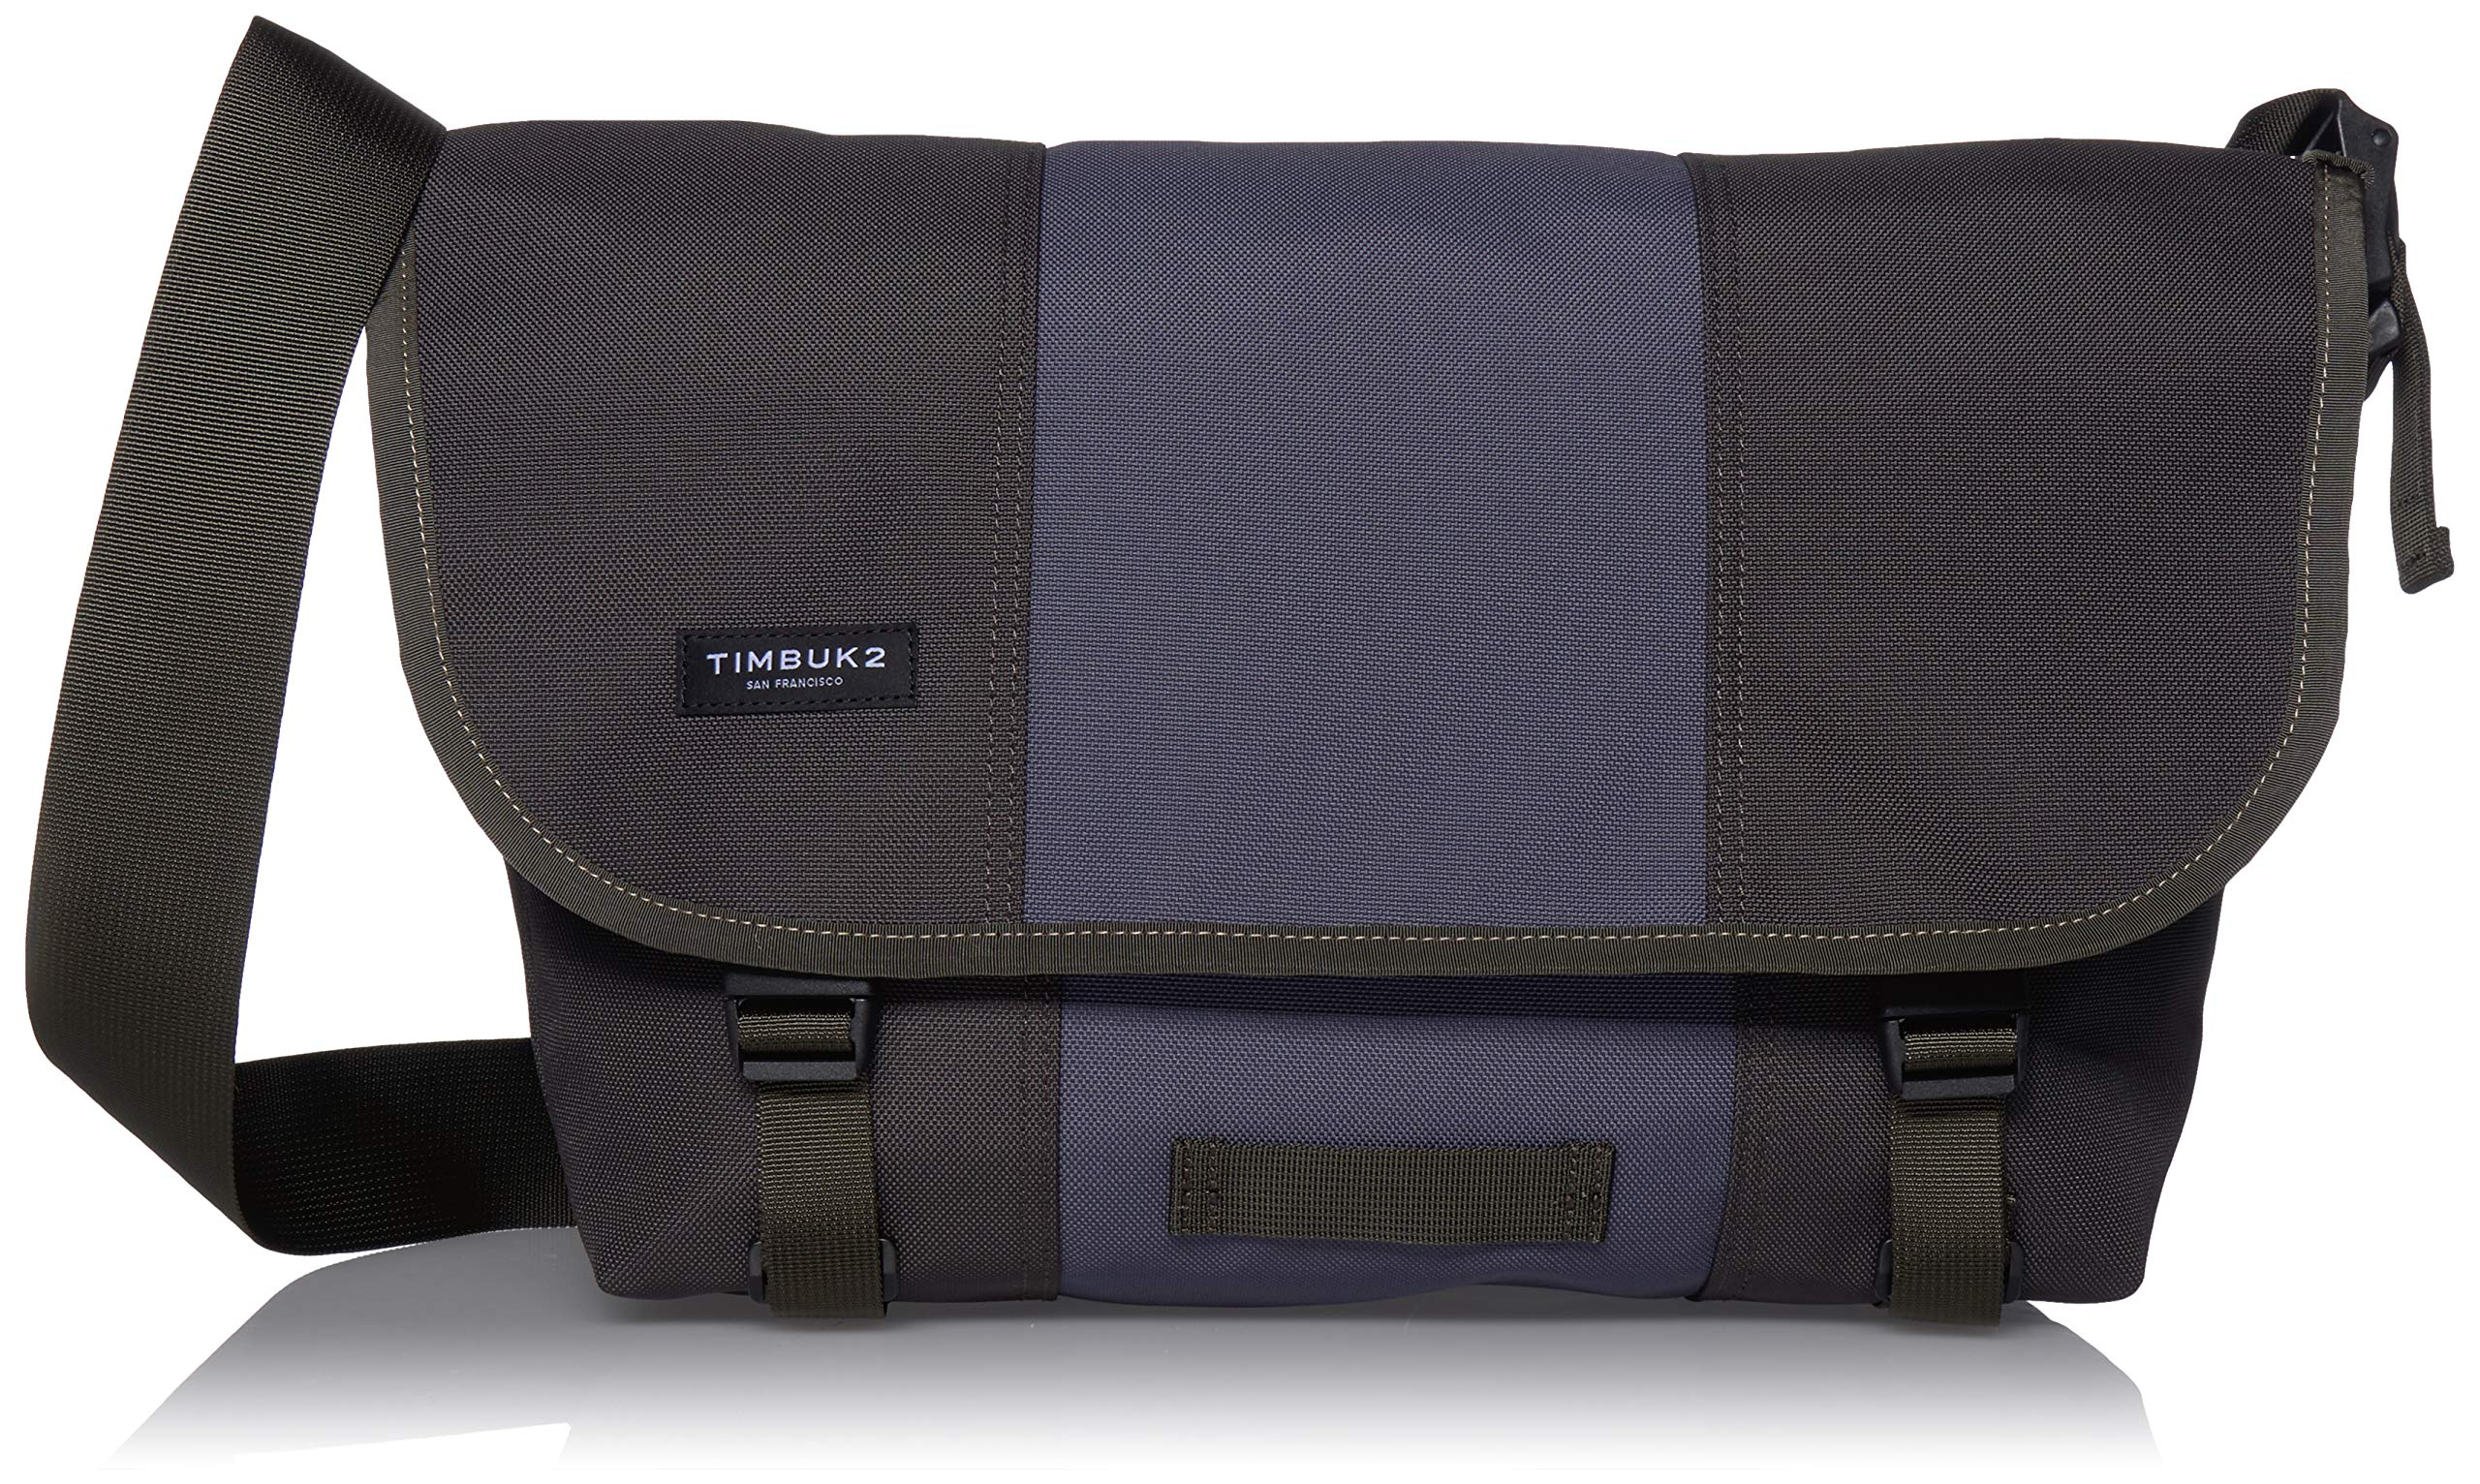 Timbuk2 Messenger Bag, Outpost, Small by Timbuk2